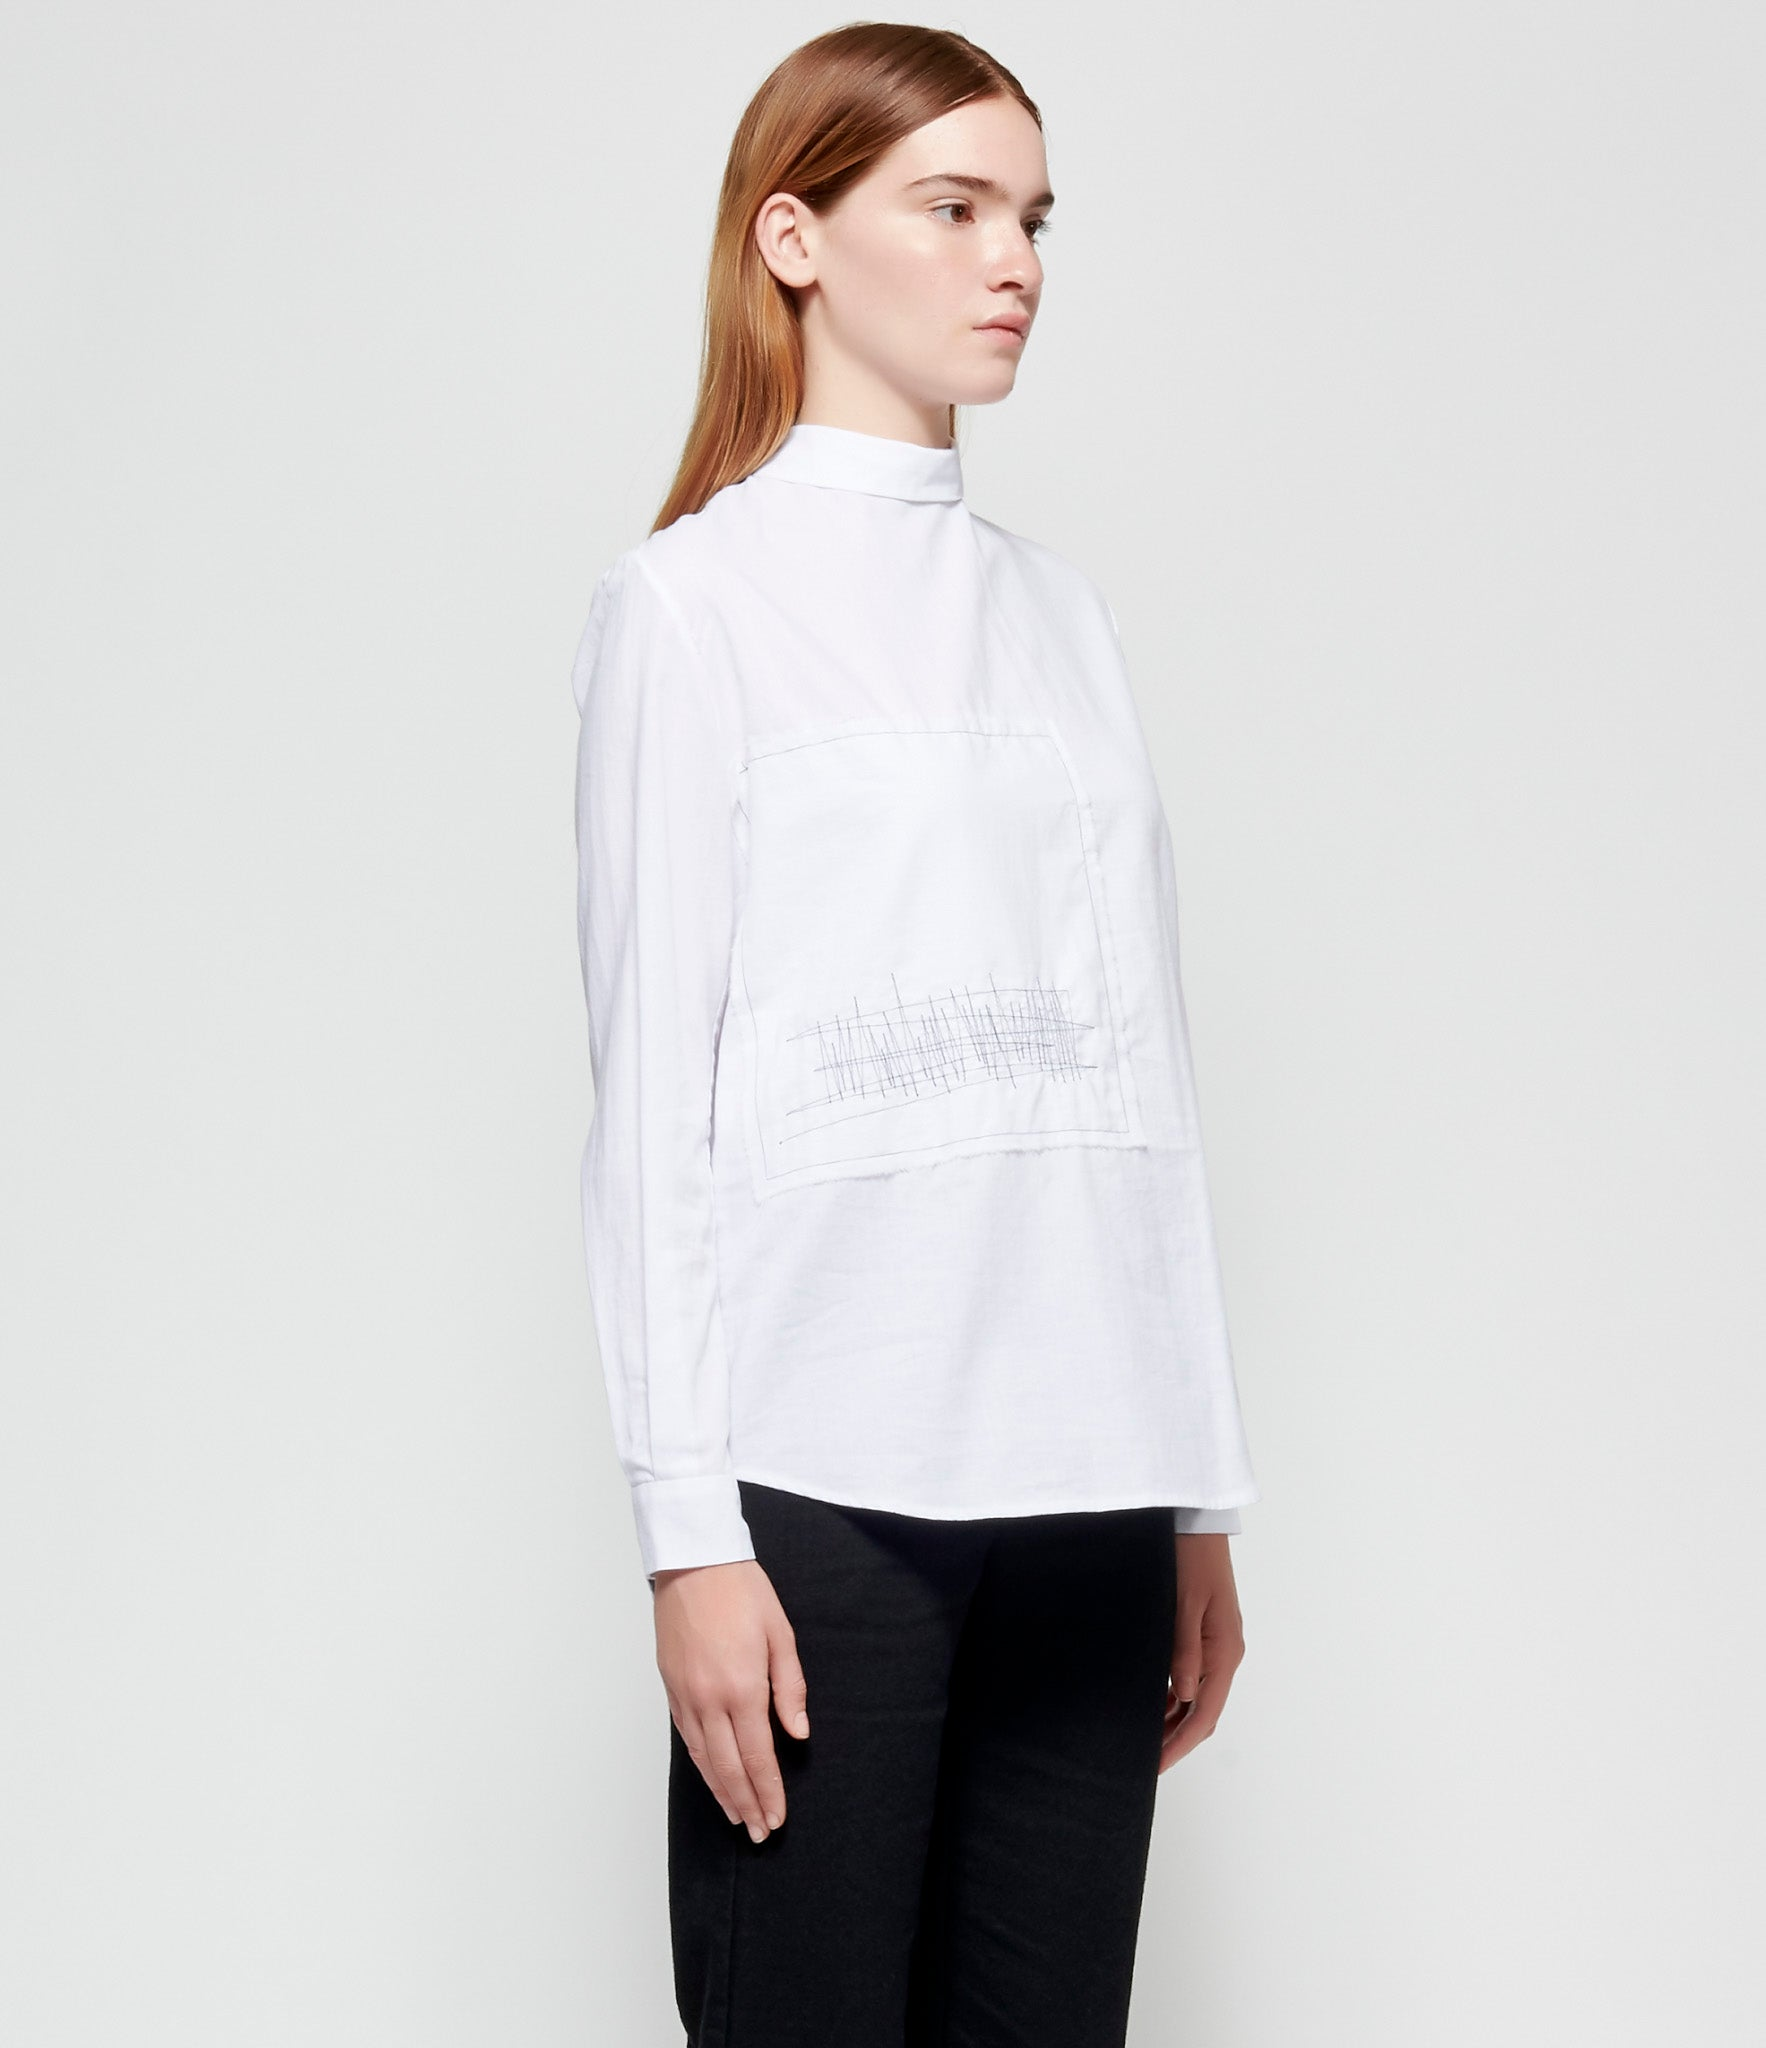 Maria Turri Embroidered Patched Back Shirt